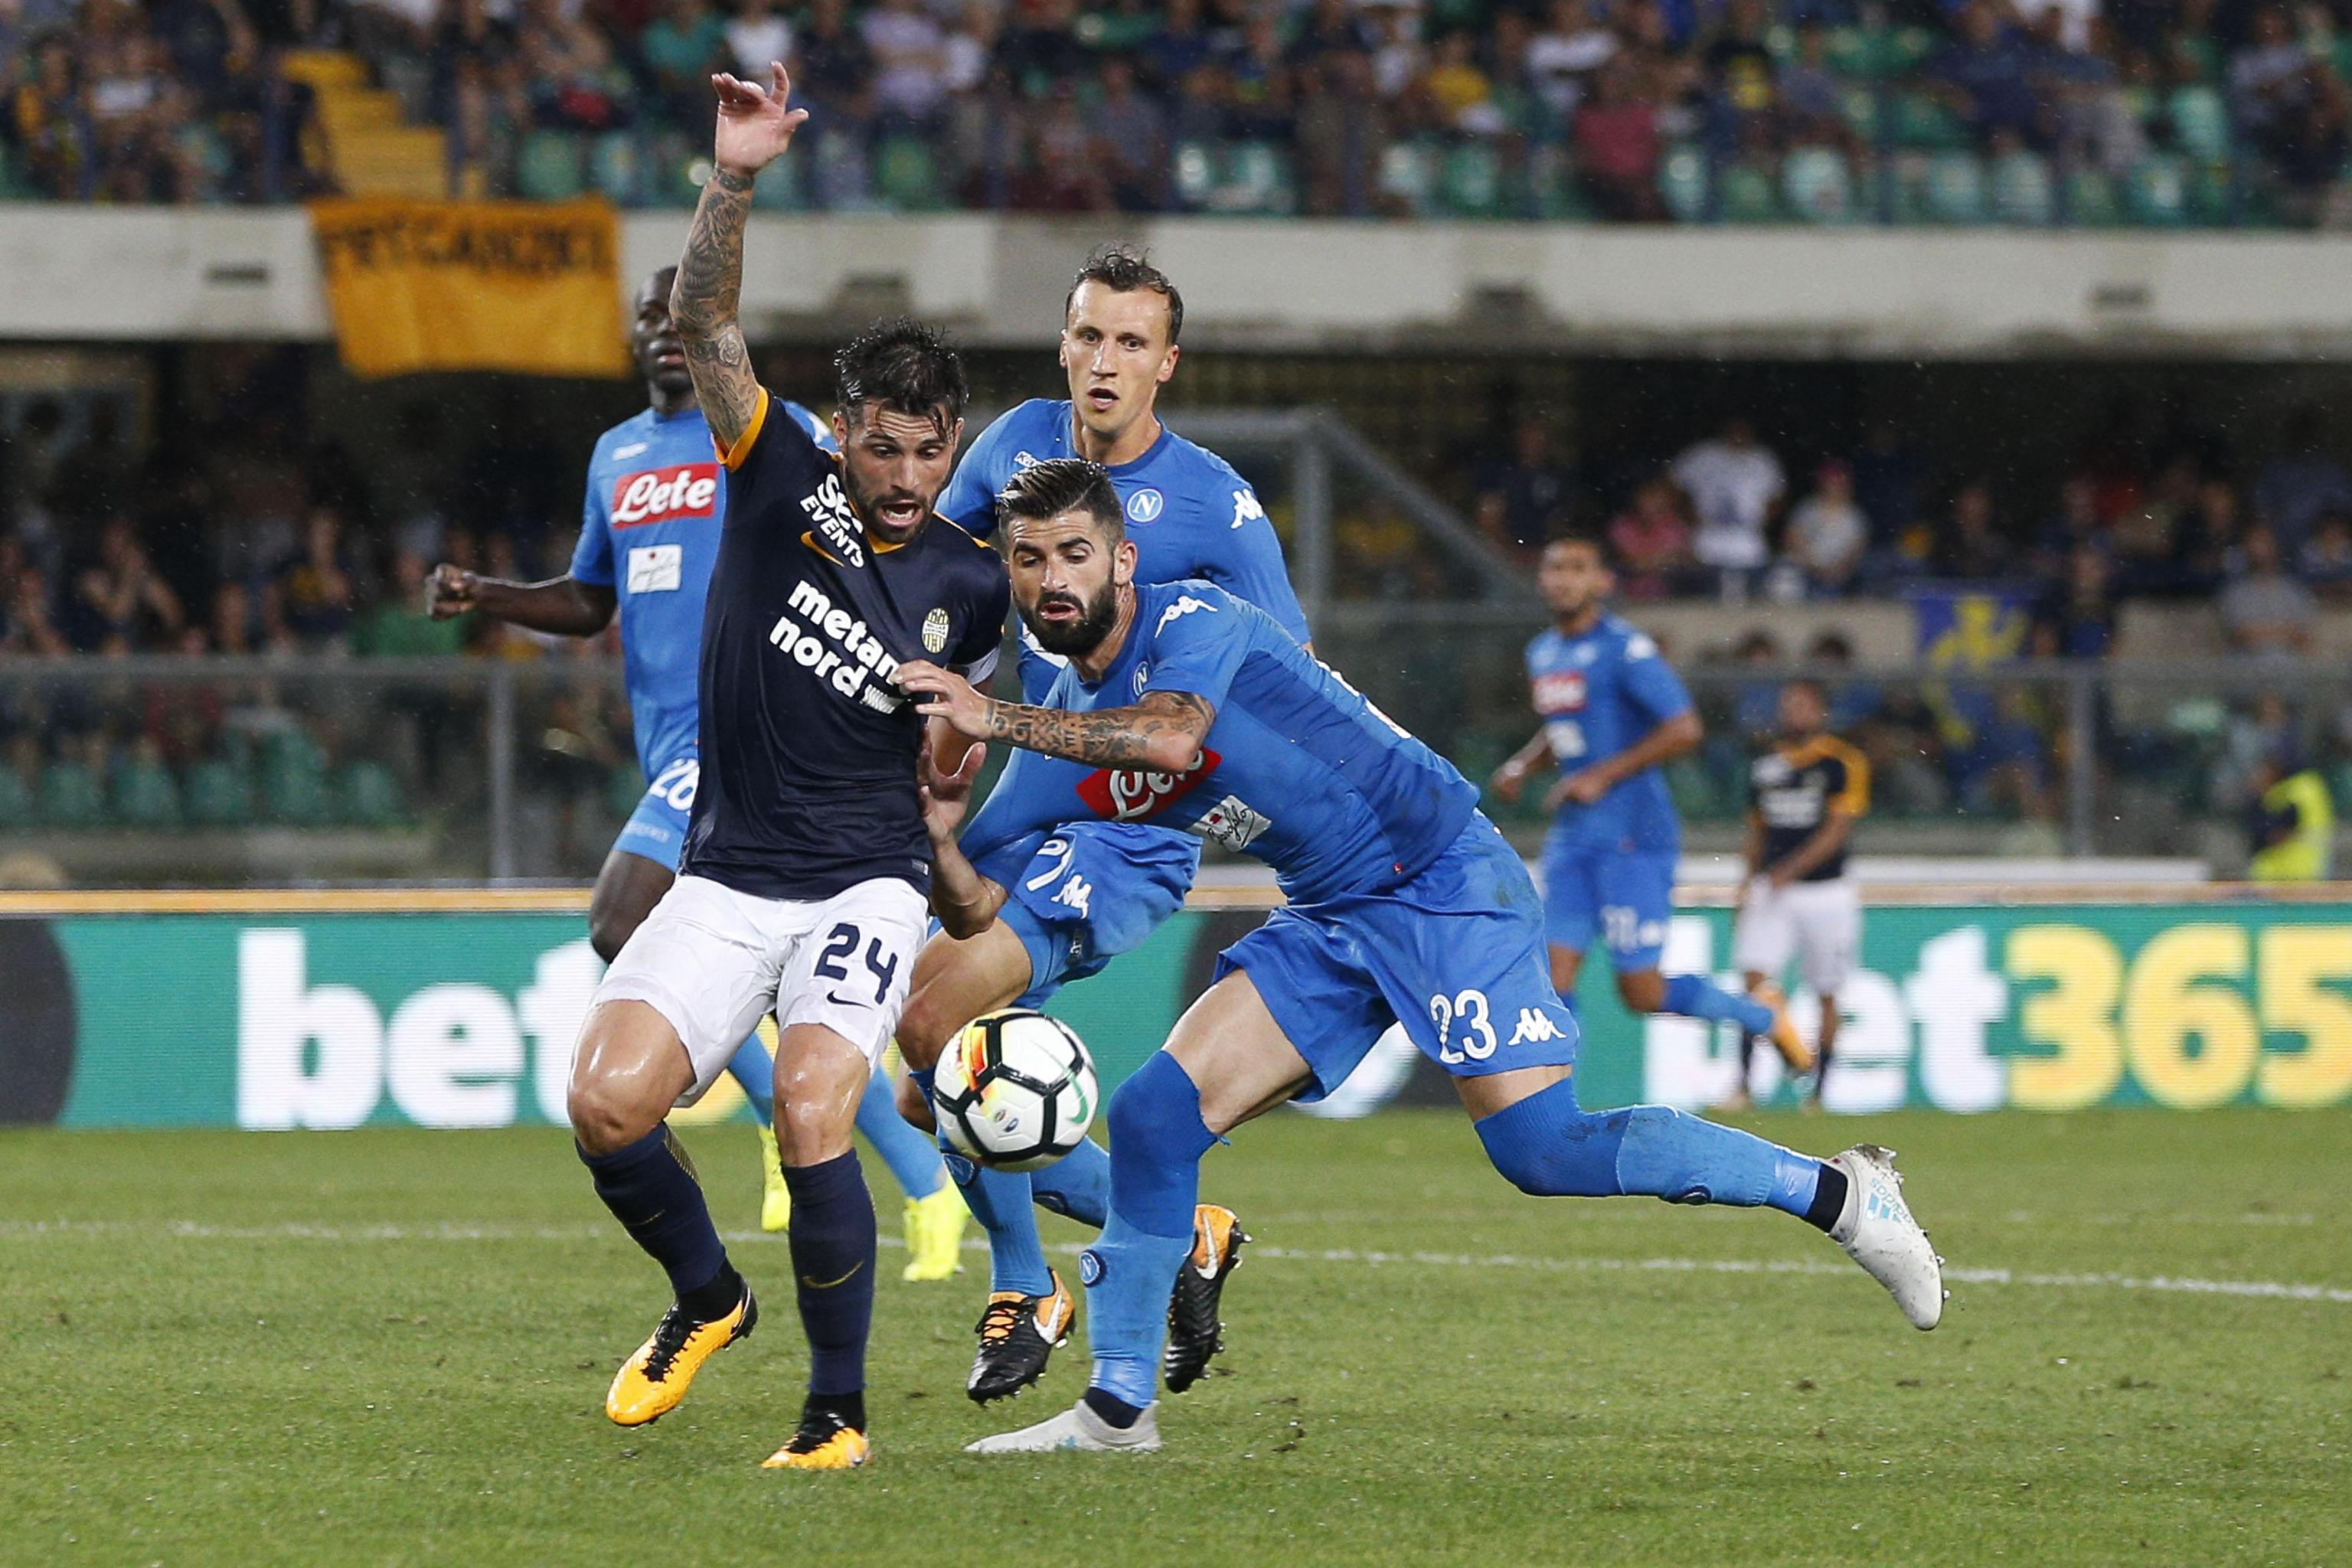 Napoli's Elseid Hysaj (right) fouls Hellas Verona's Daniel Bessa during a Serie A soccer match between Hellas Verona and Napoli at the Bentegodi stadium in Verona, Italy on Saturday.